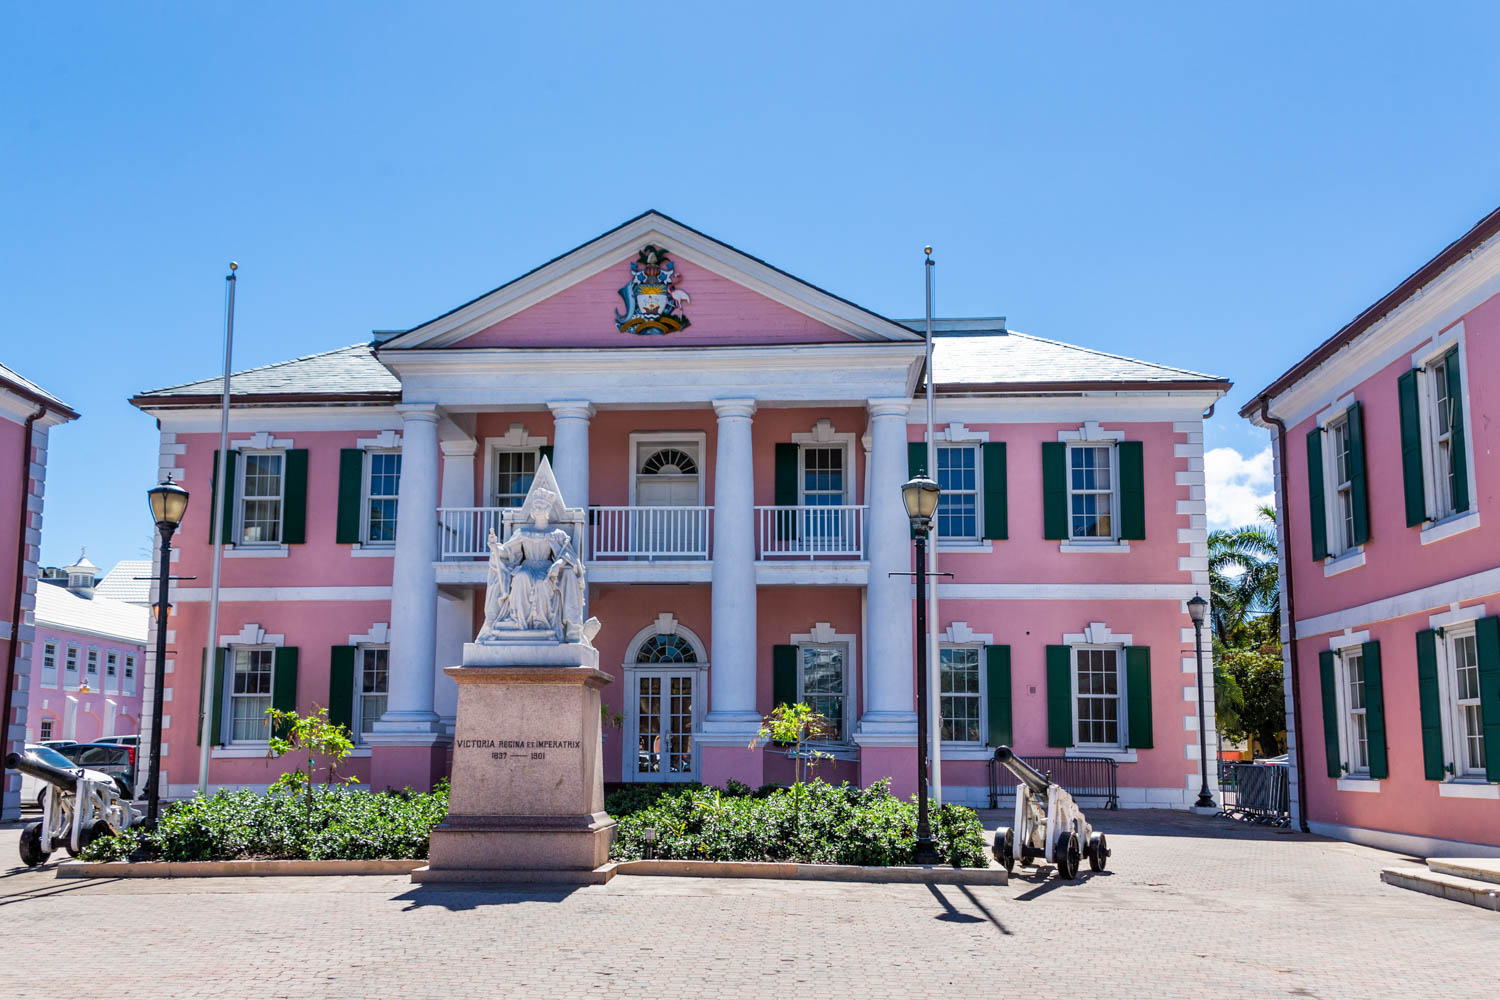 Parliament Square in Nassau is not far from all the main stops. It is one of the best things to do in Nassau Bahamas cruise port when looking for what to do in Nassau port